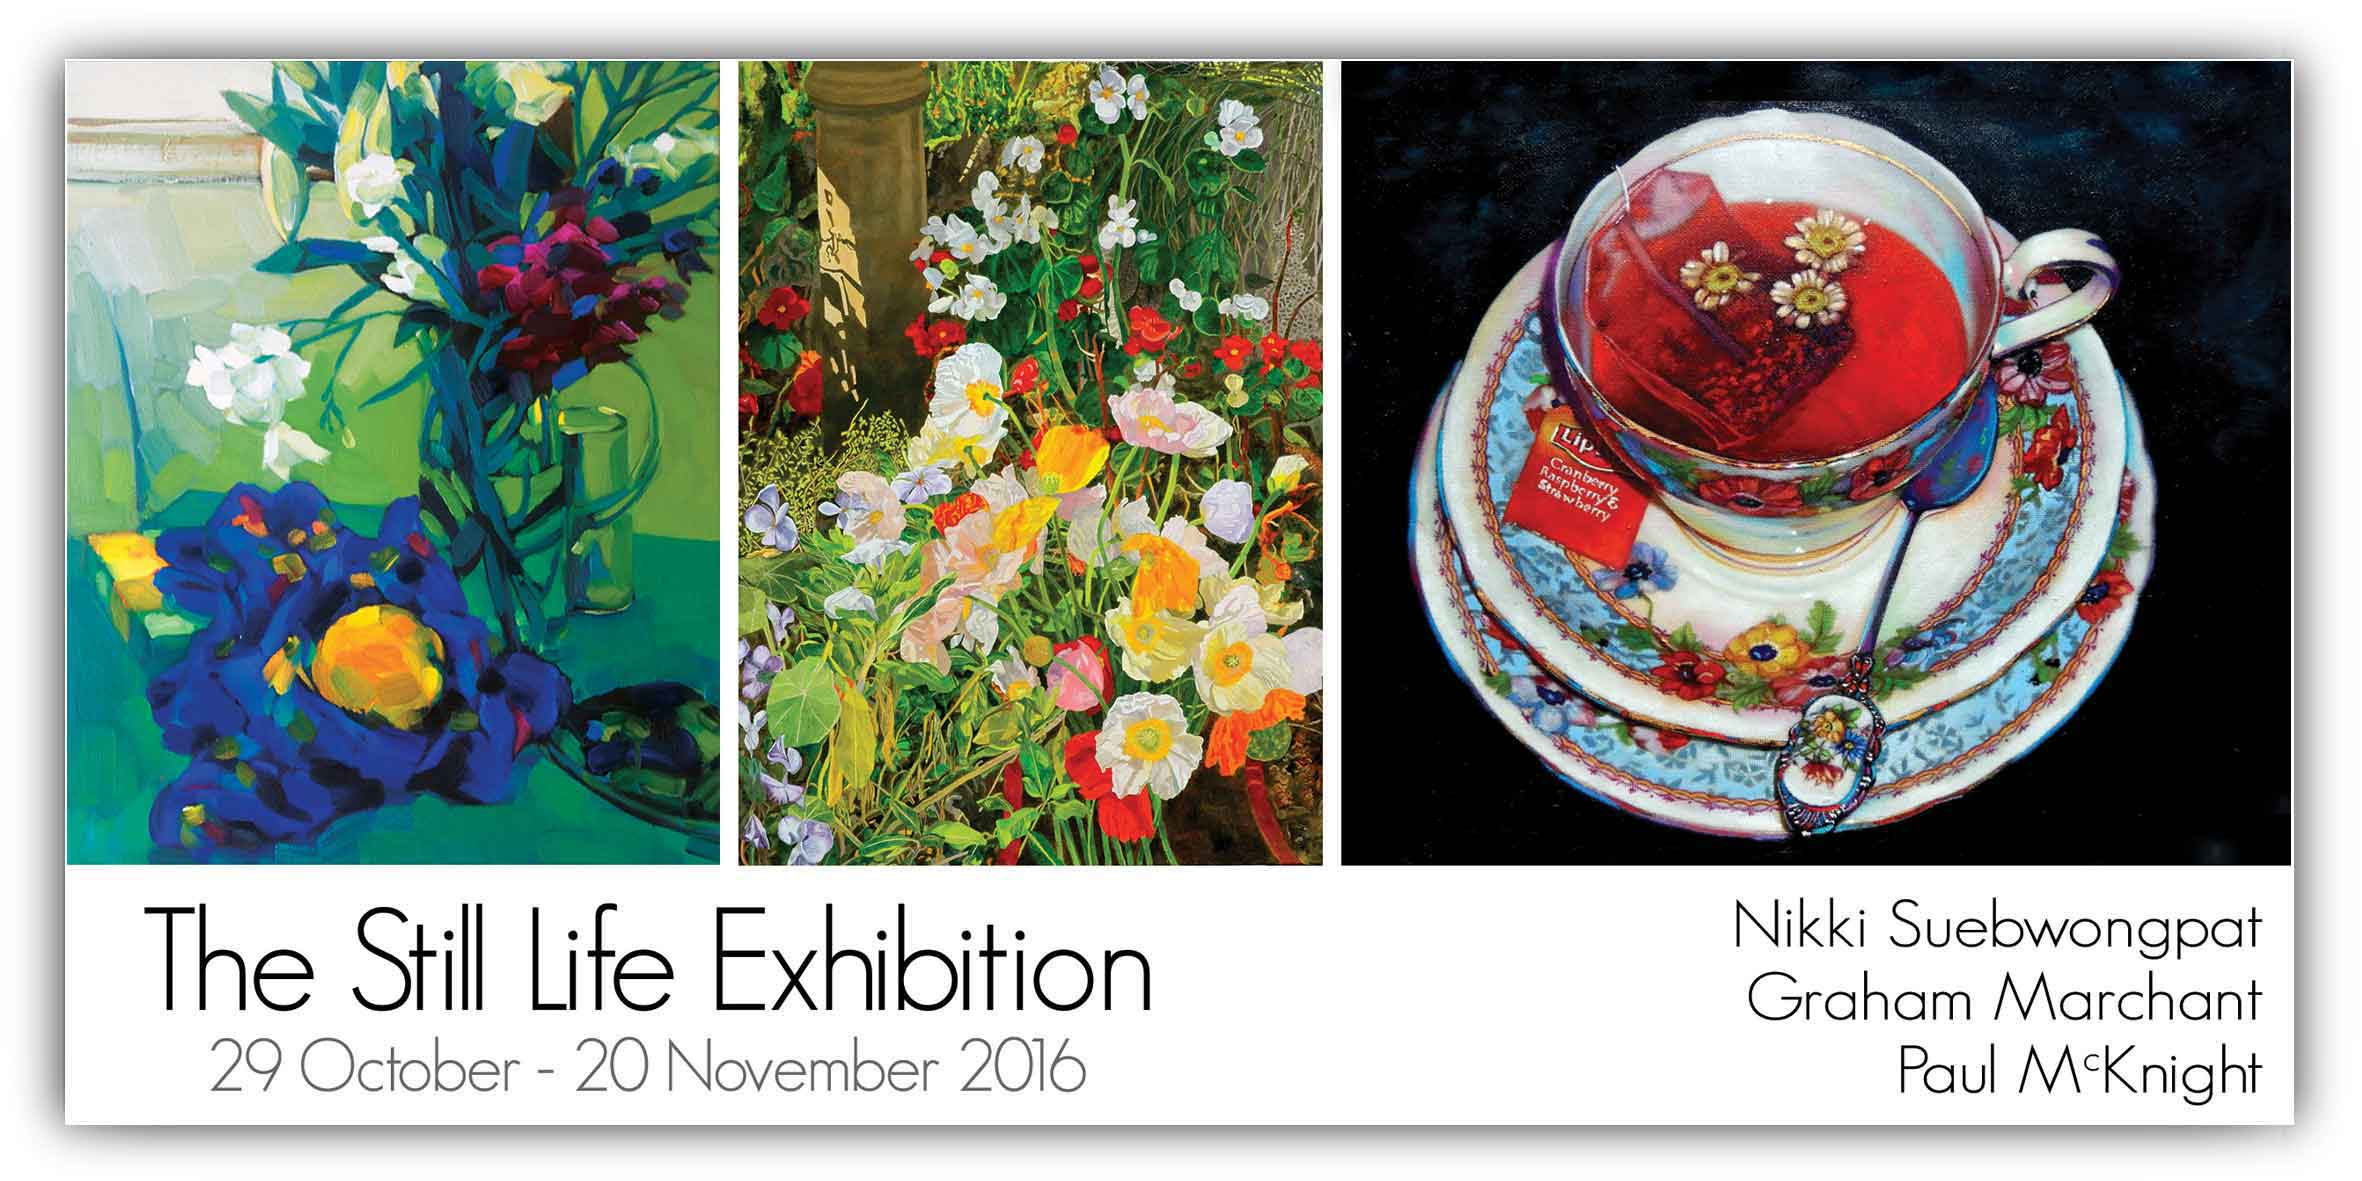 View Exhibition at Artsite Gallery, Sydney: 29 October - 20 November 2016. The Still Life Exhibition with Graham Marchant | Paul McKnight | Nikki Suebwongpat.